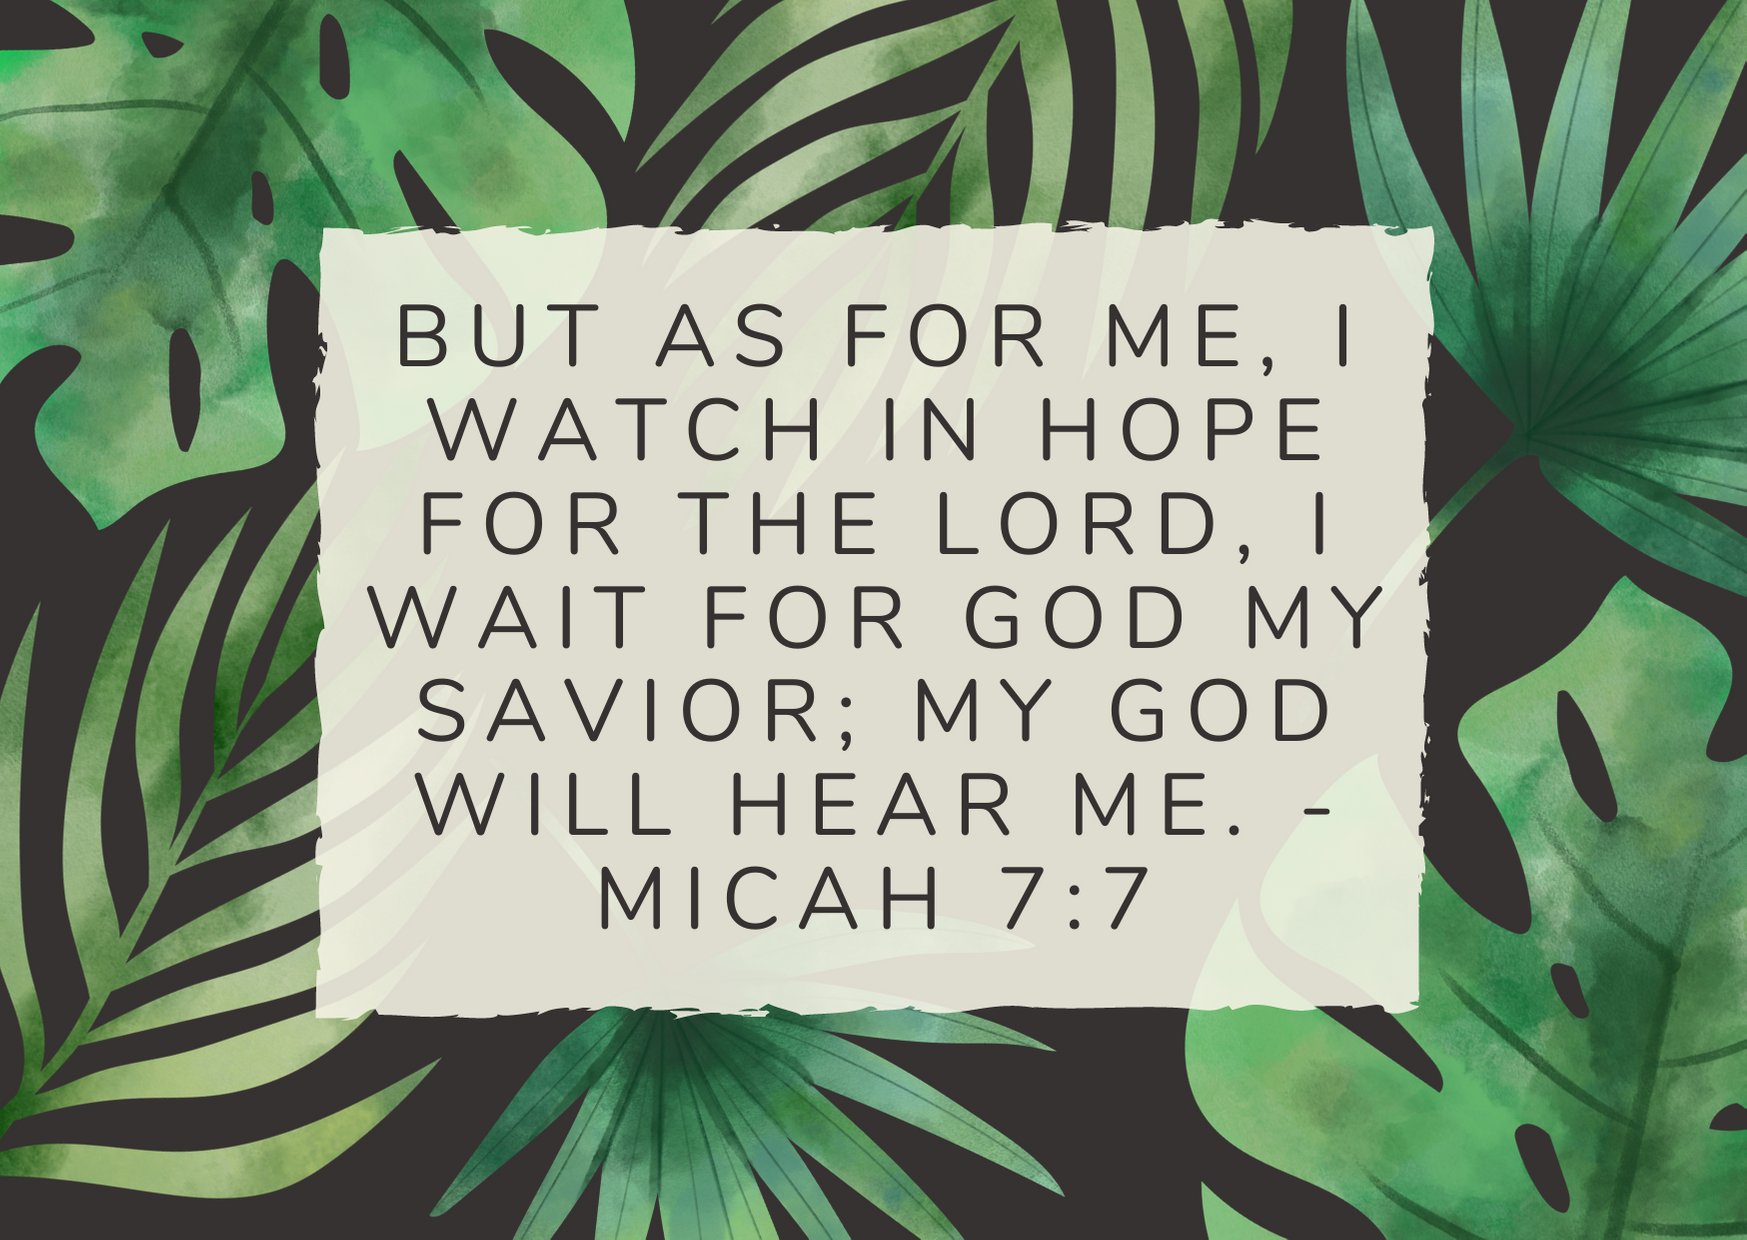 But as for me, I watch in hope for the Lord, I wait for God my Savior; my God will hear me. - Micah 7:7